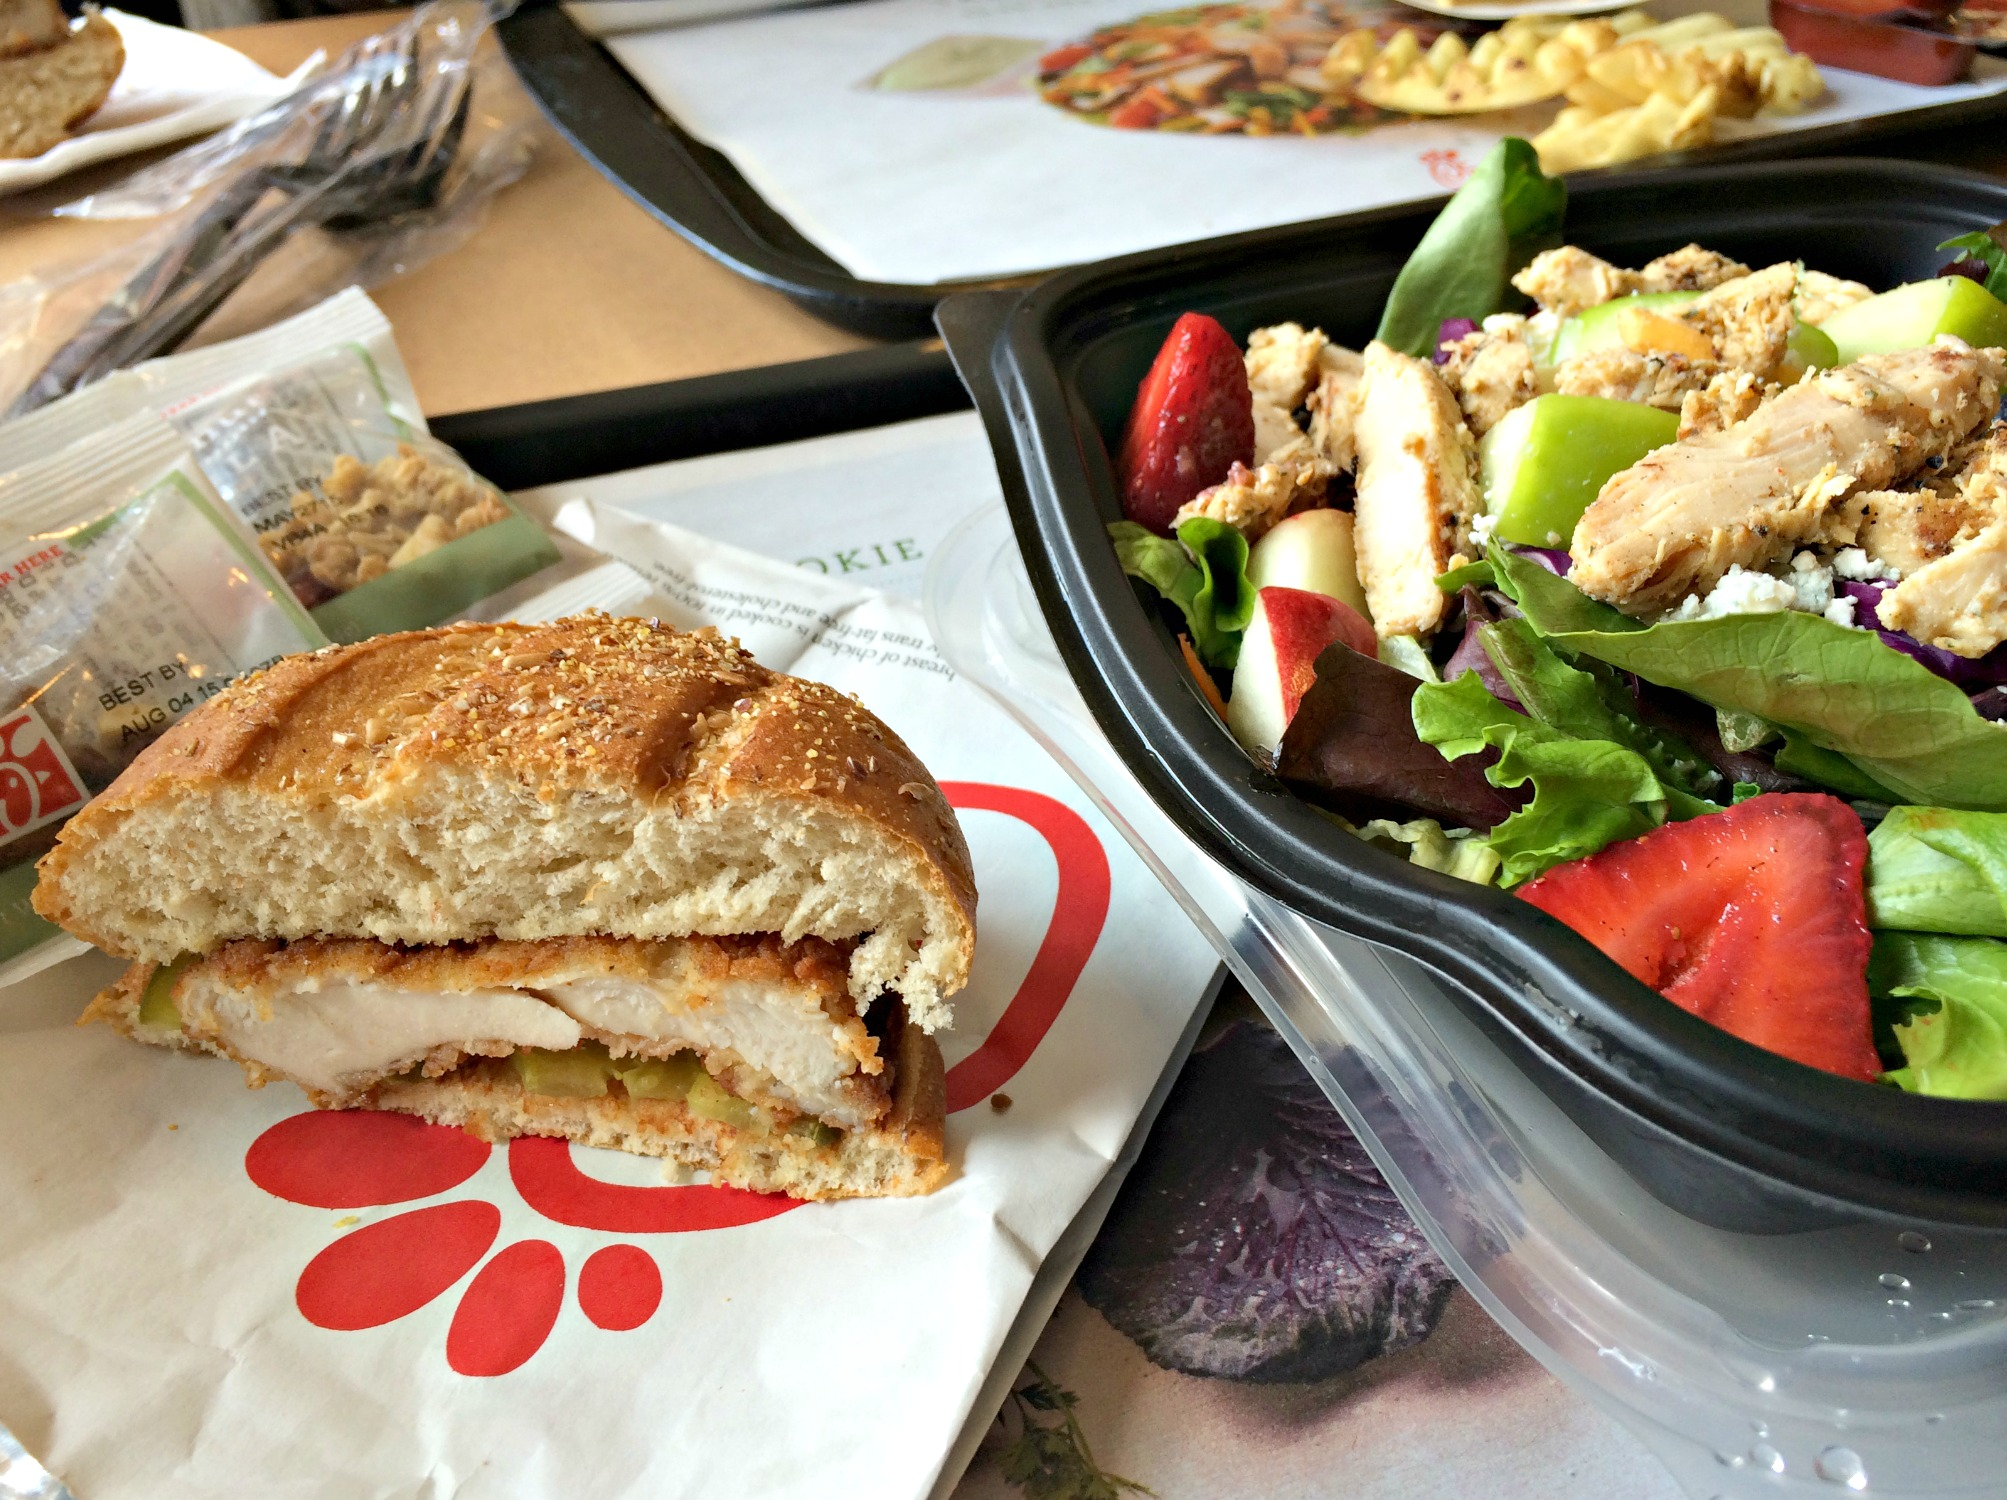 Chick-fil-A sandwich with fruit on salad and fries